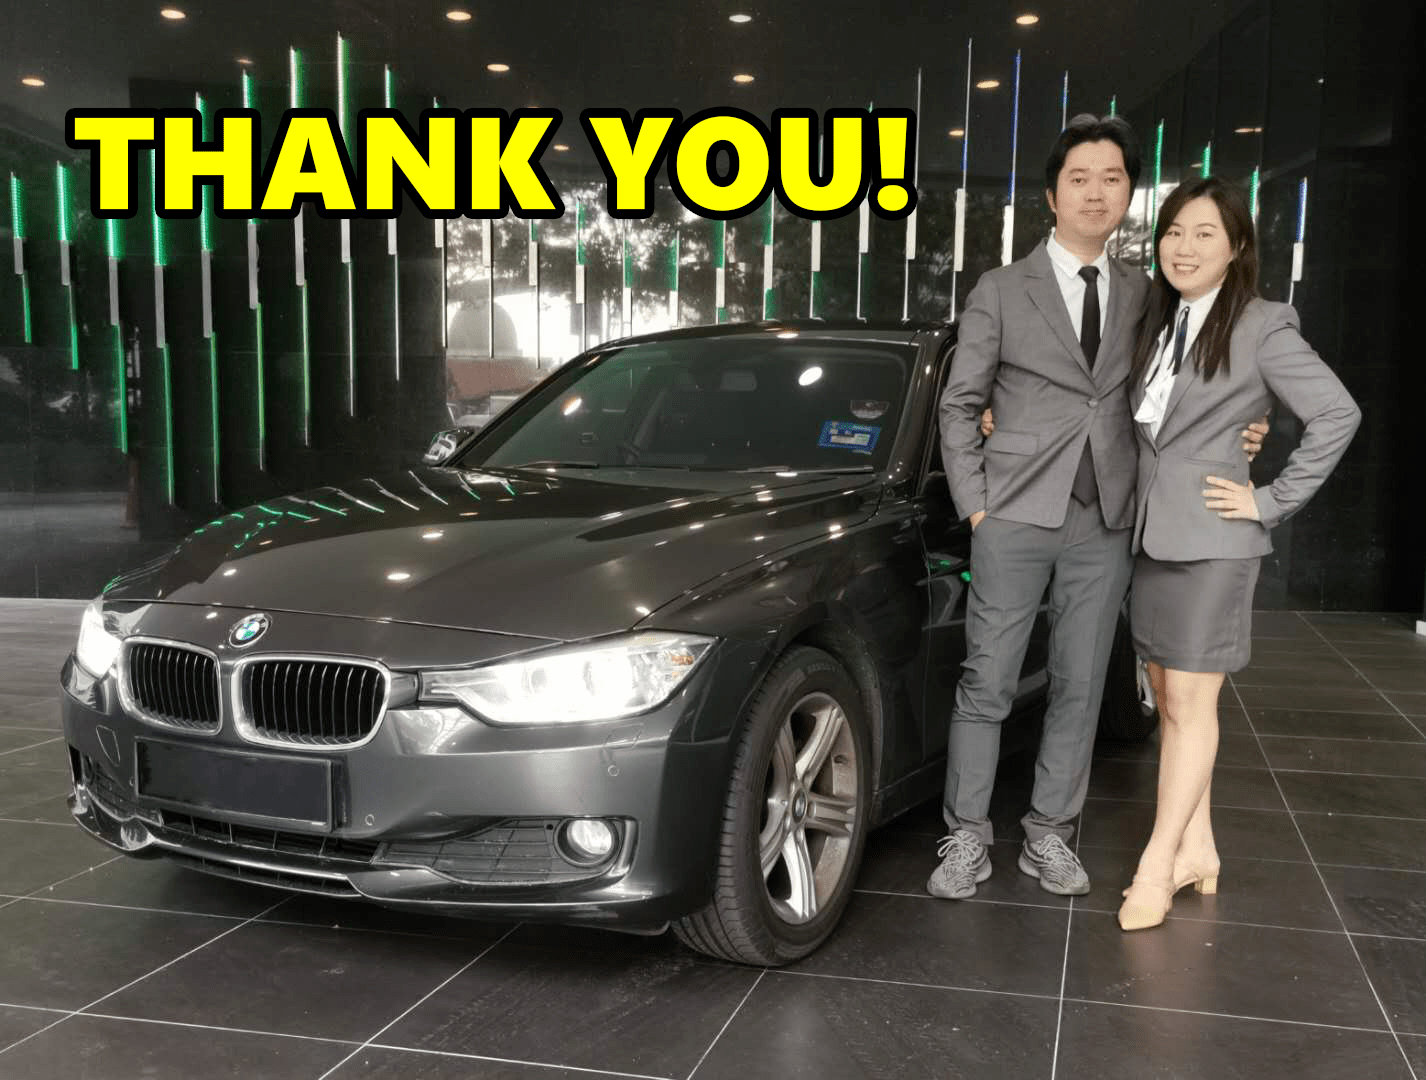 BMW DCA Brian Ong and Sherry Liew